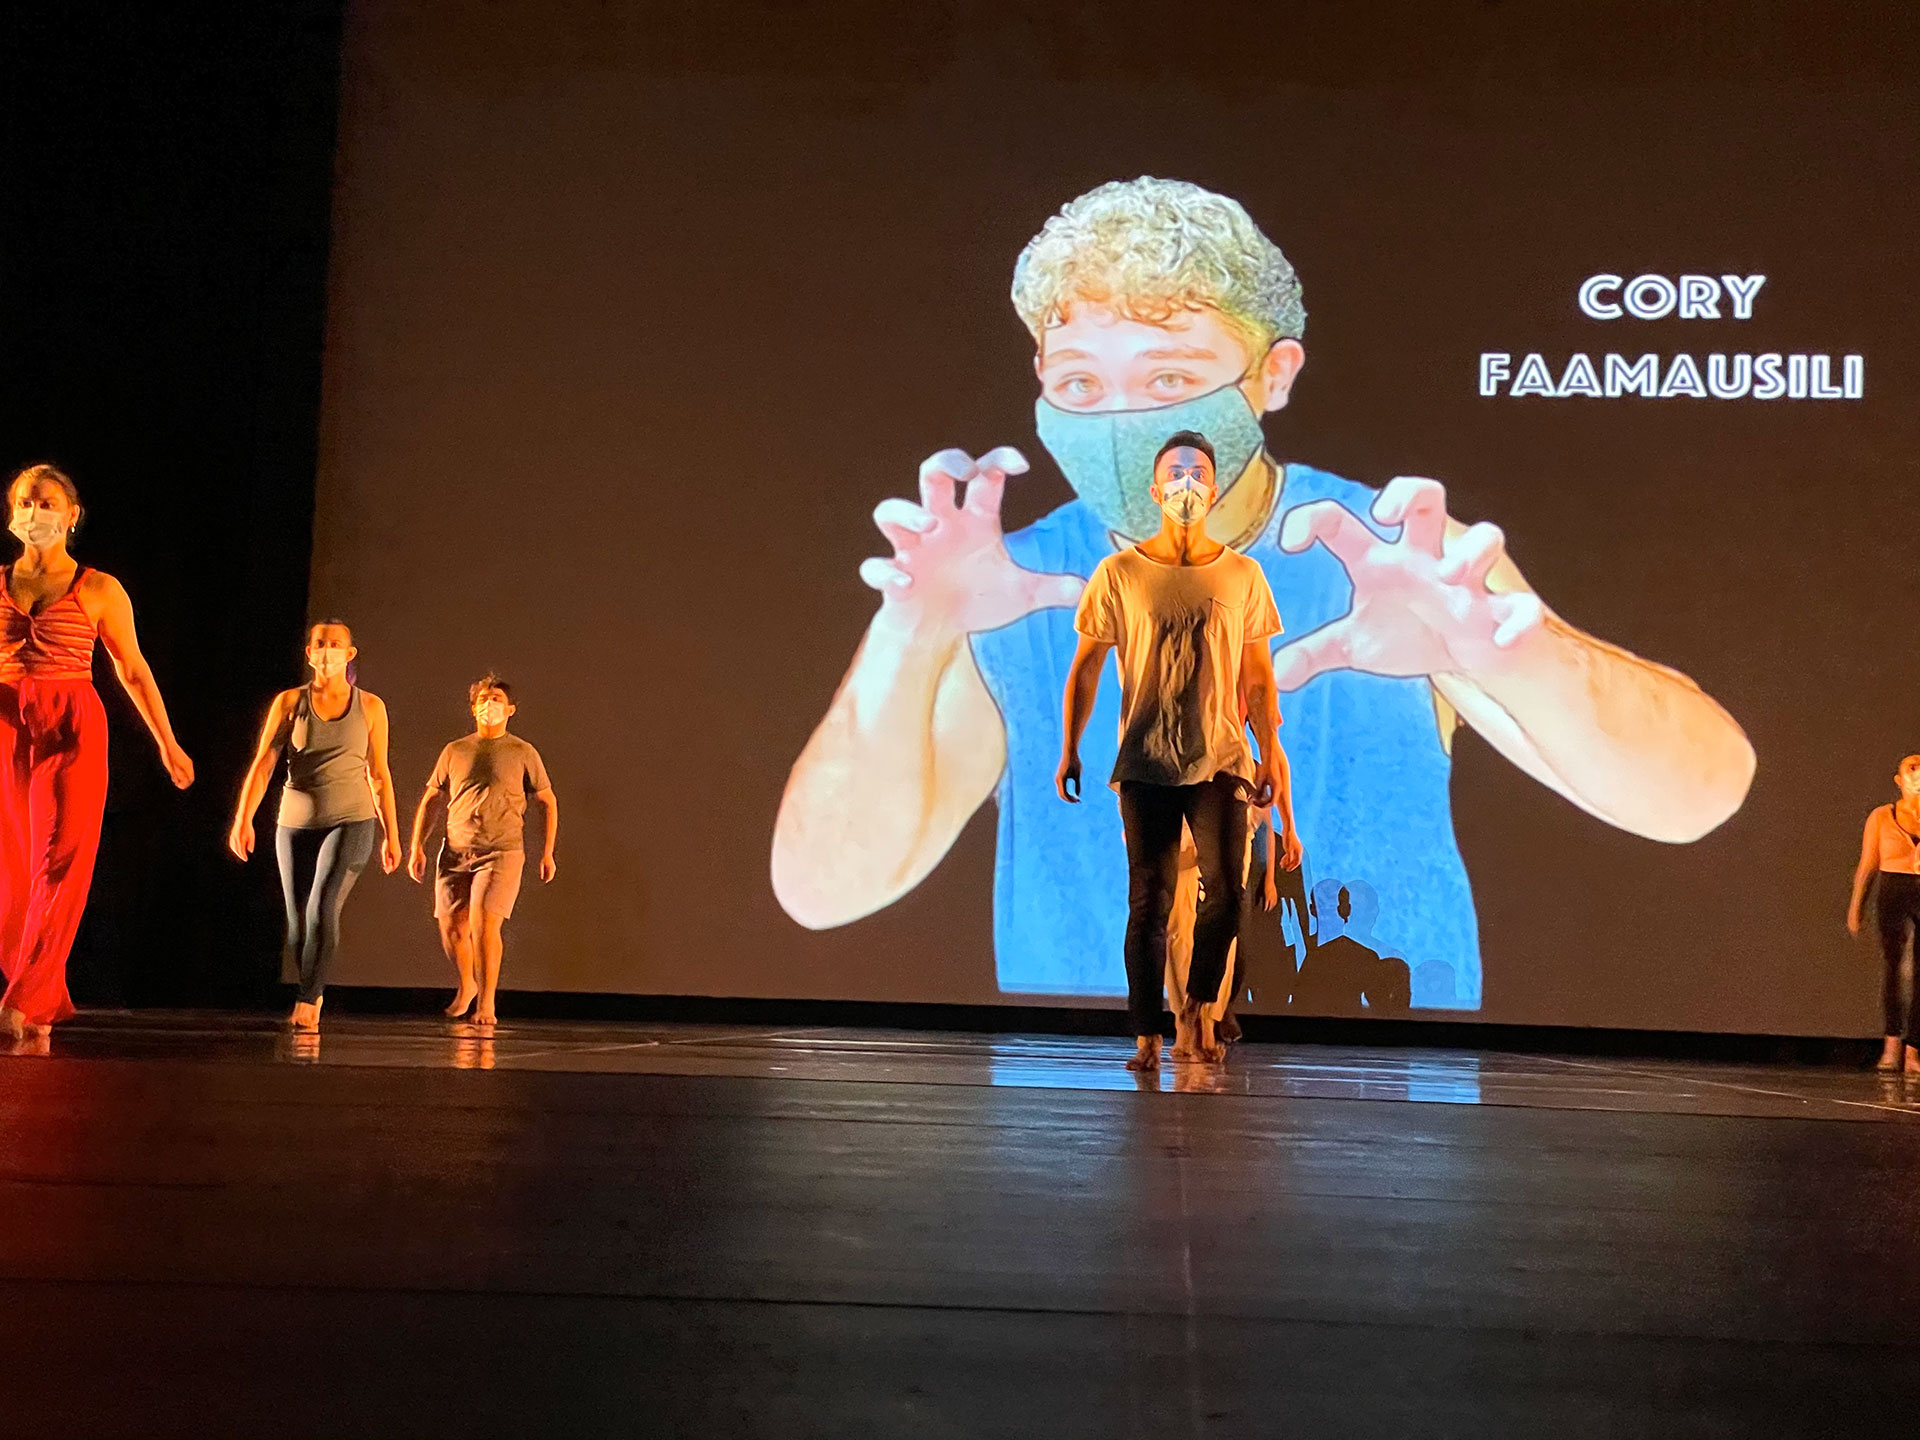 Dancers stand on stage with large image of dancer Cory Faamausili projected behind them.